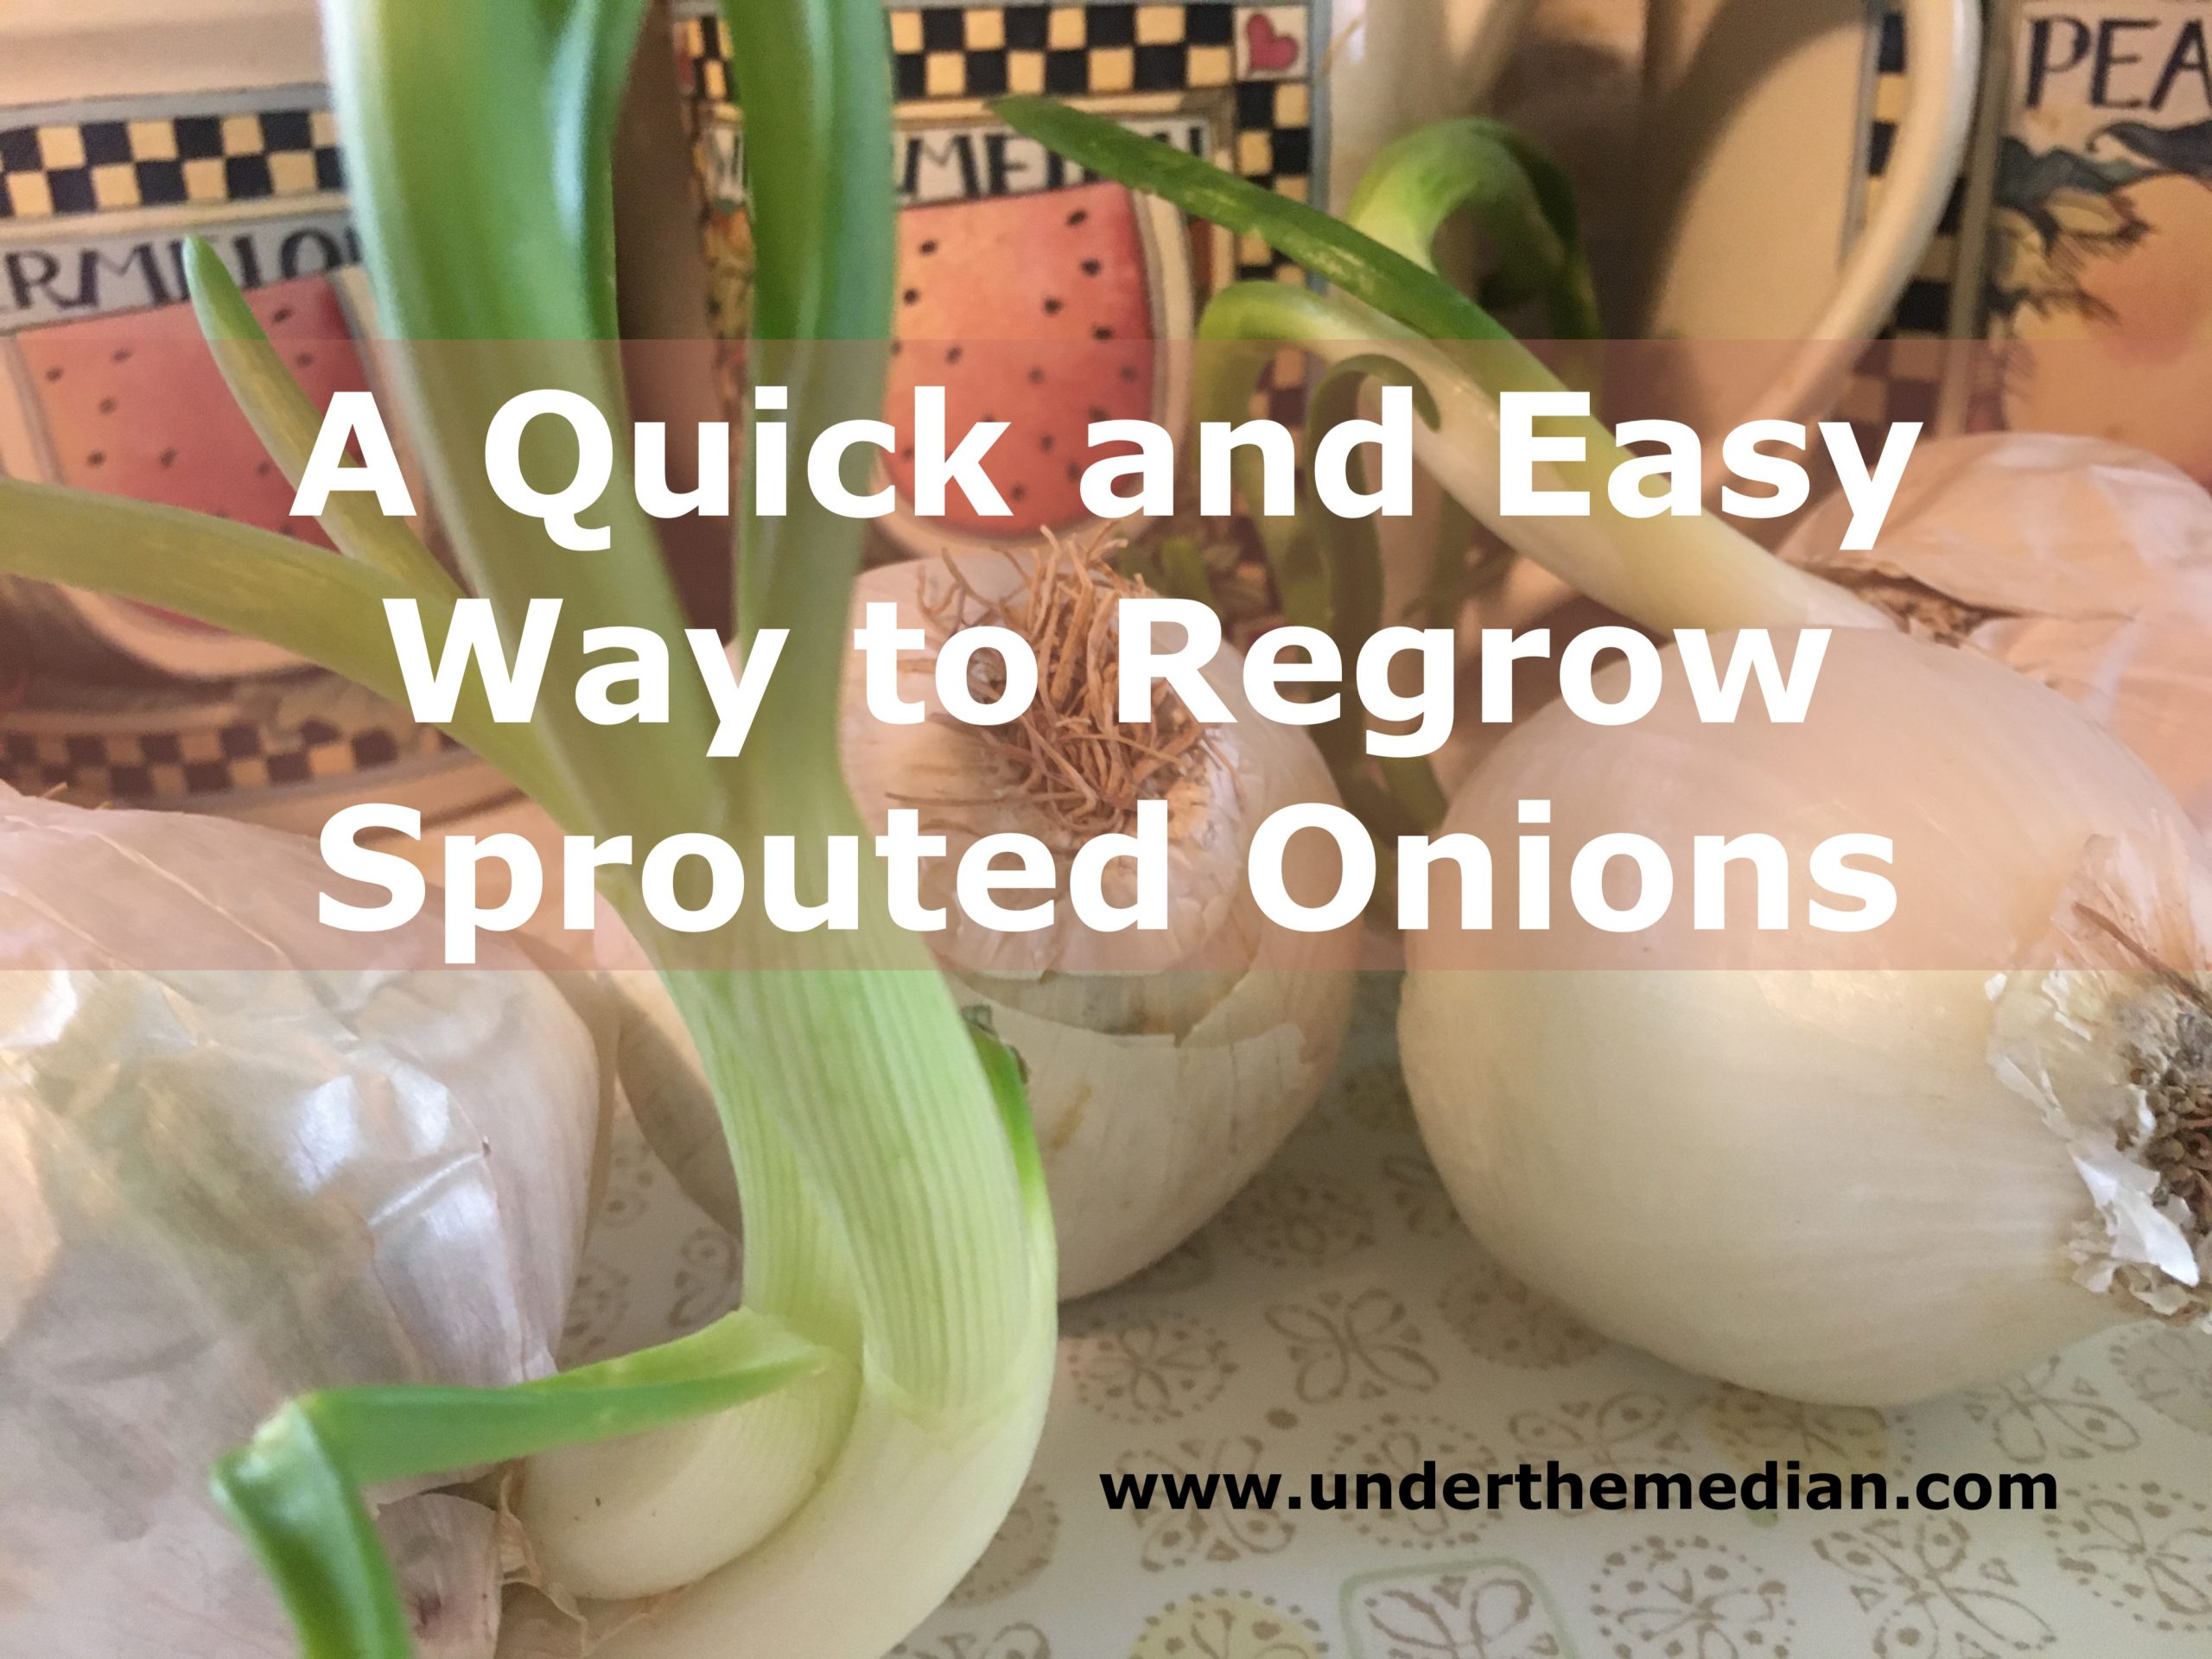 A Quick and Easy Way to Regrow Sprouted Onions